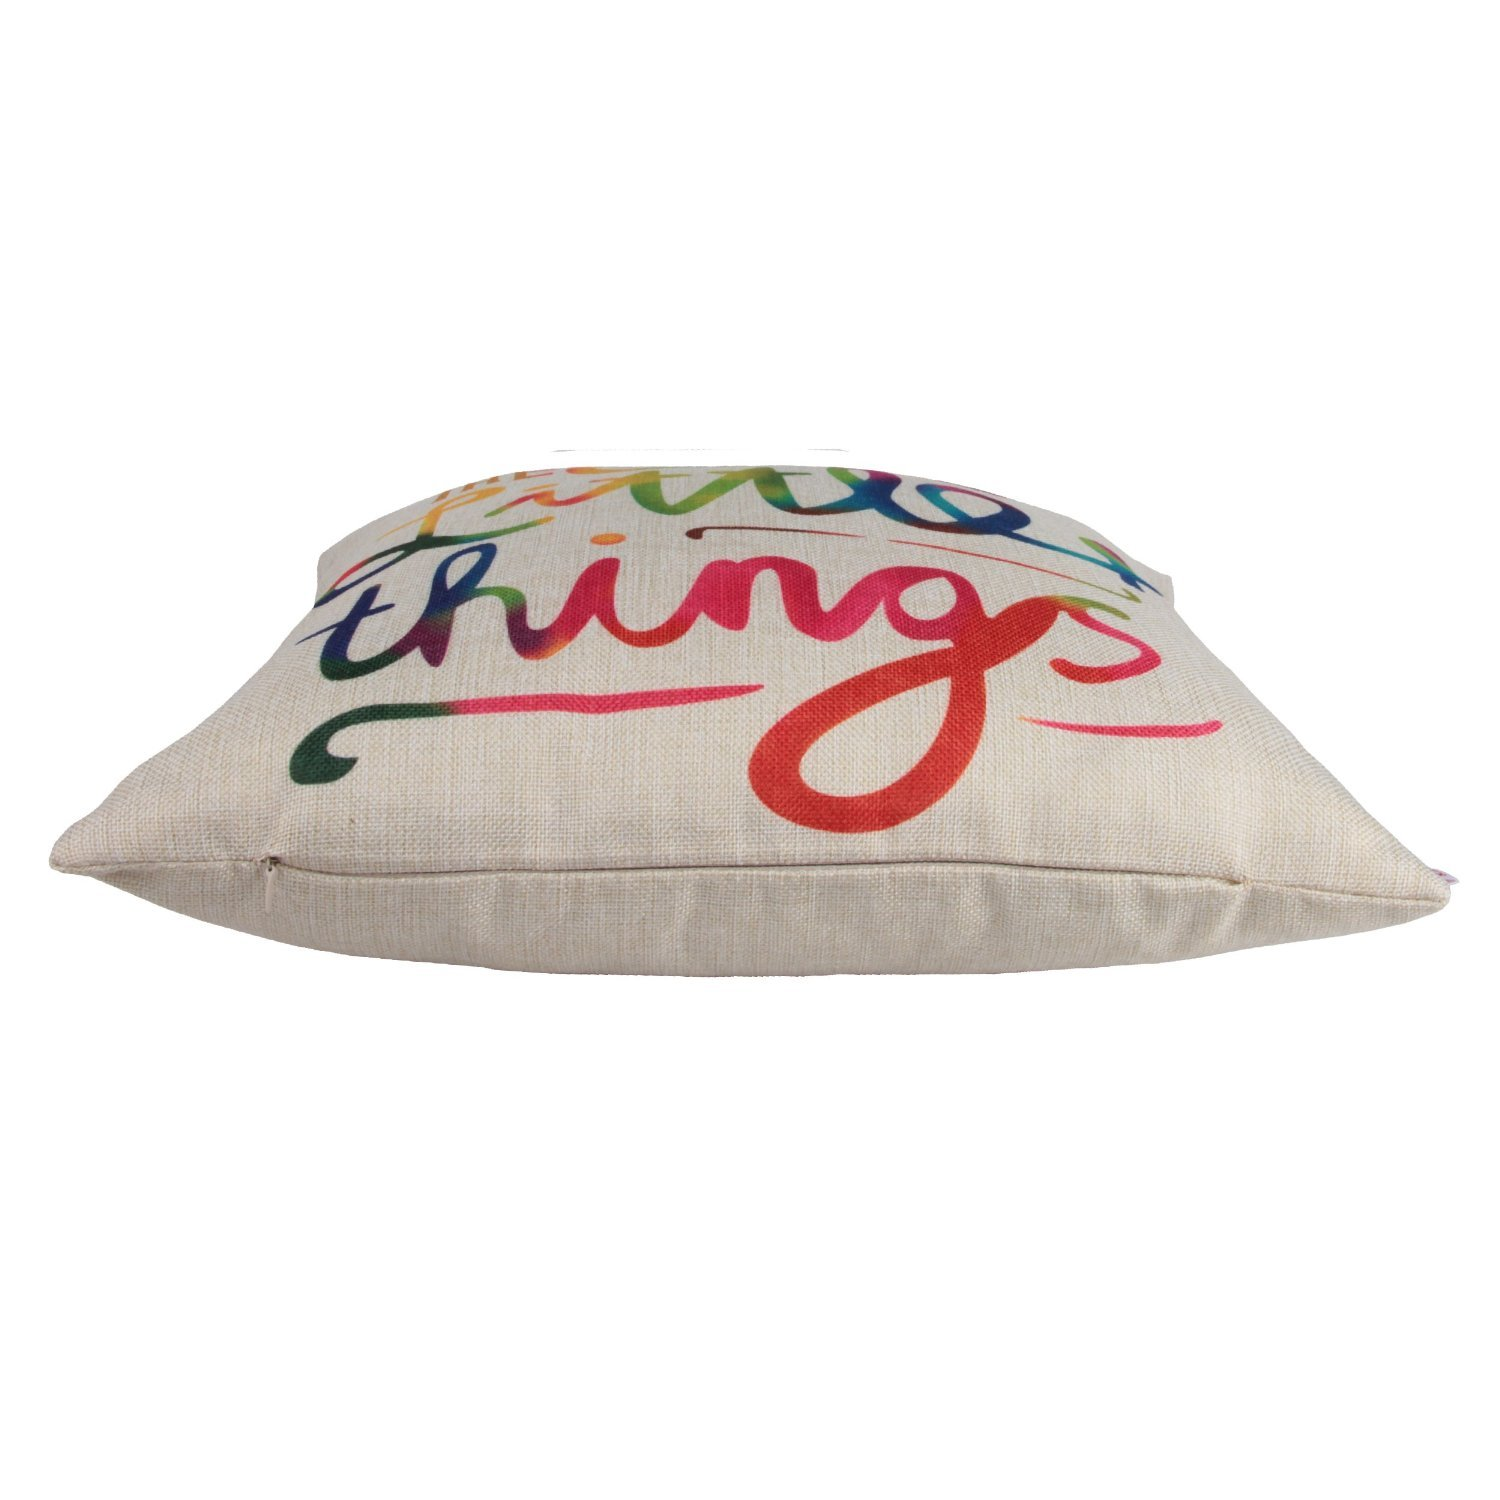 4Rissa Enjoy The Little Things Colorful Inspirational Inspiring Throw Bedding Pillow Home Decor